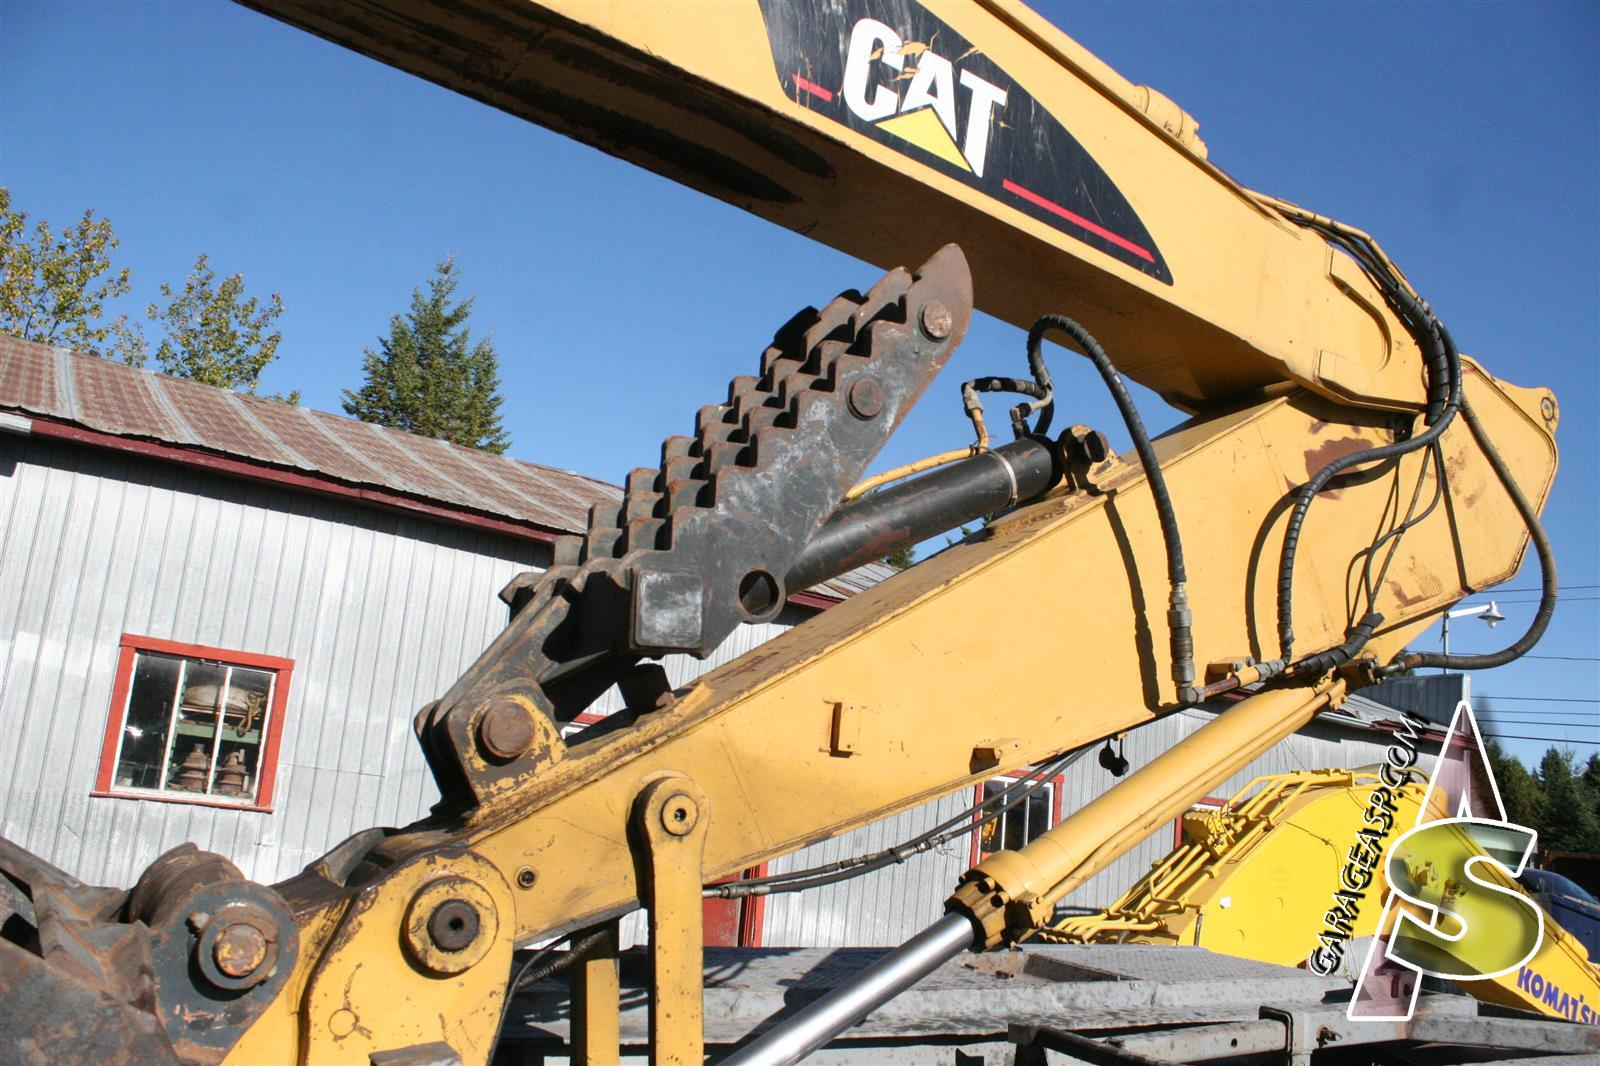 Caterpillar Hydraulic Cylinders - Heavy equipment parts